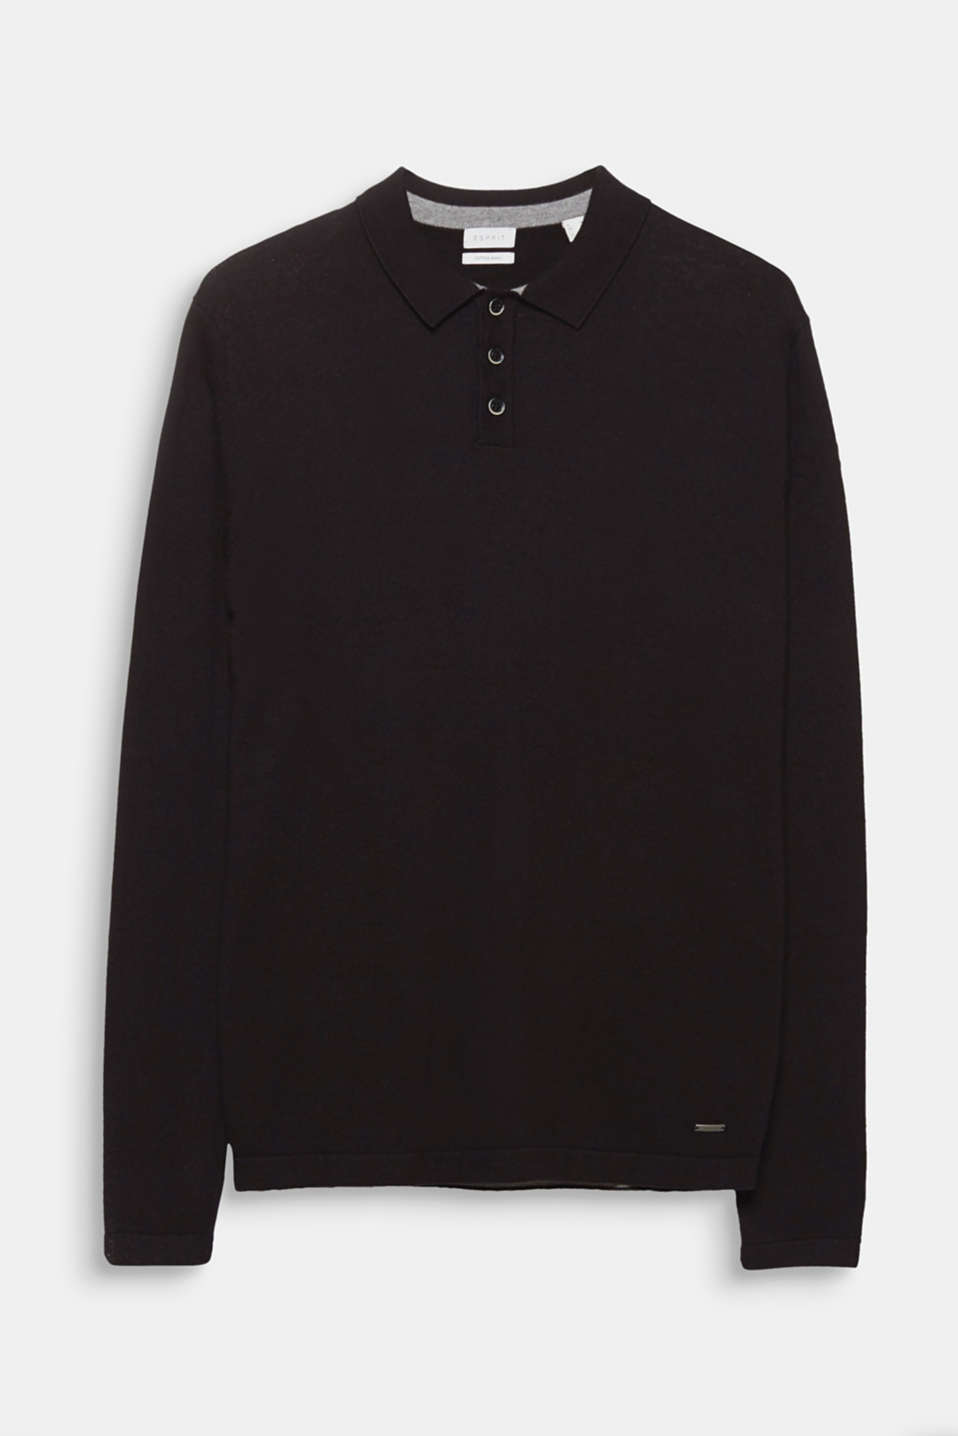 A menswear classic: the polo-neck jumper. The high-quality fine knit with wool makes this jumper particularly elegant.